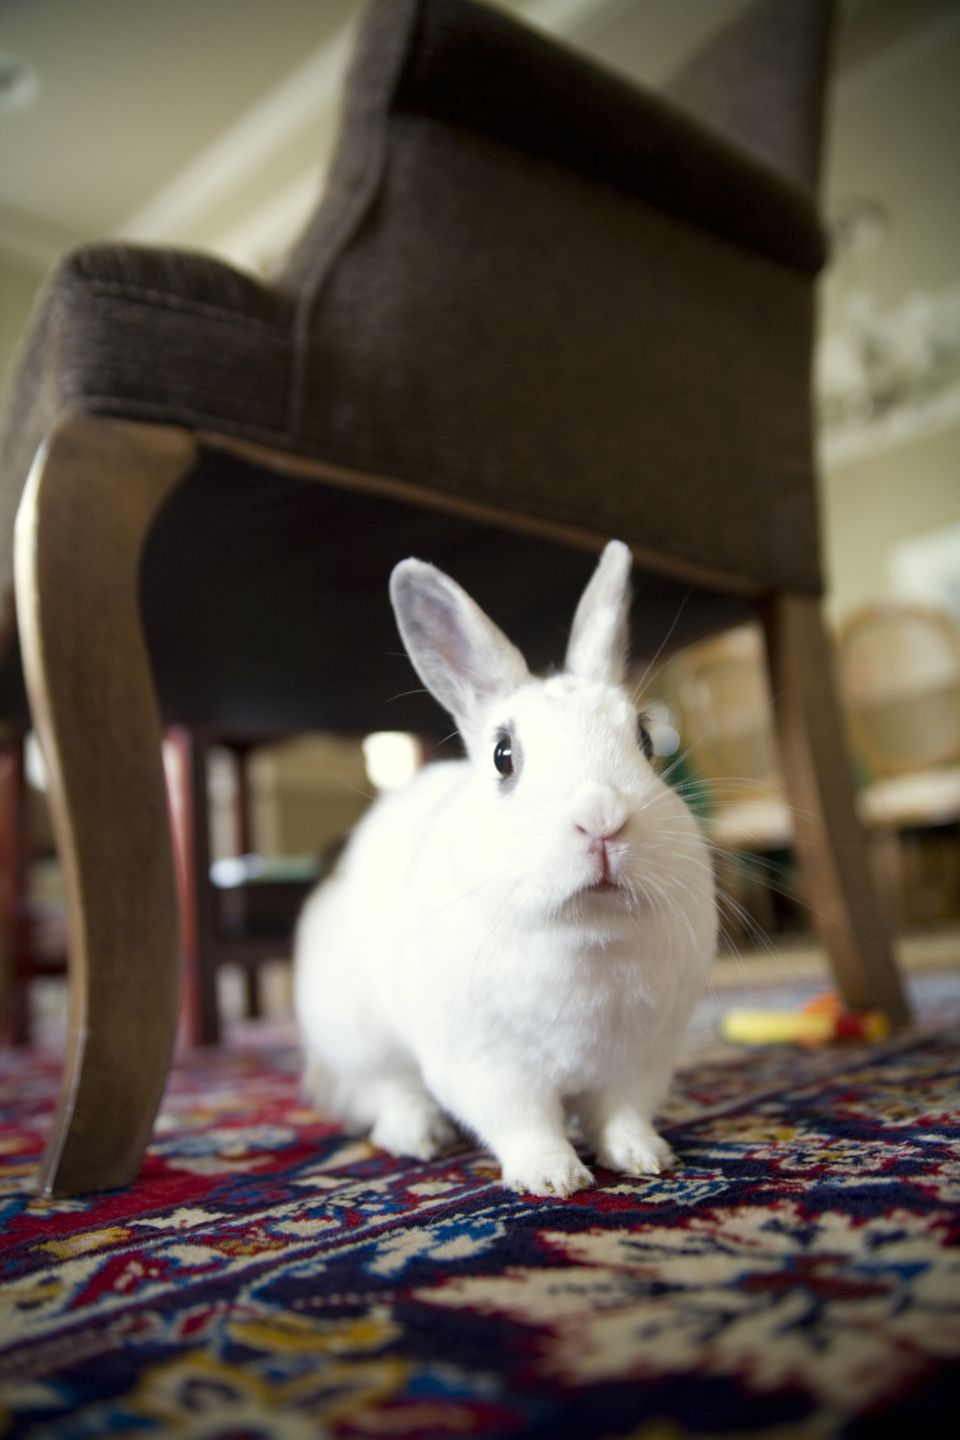 Rabbit under armchair on a rug